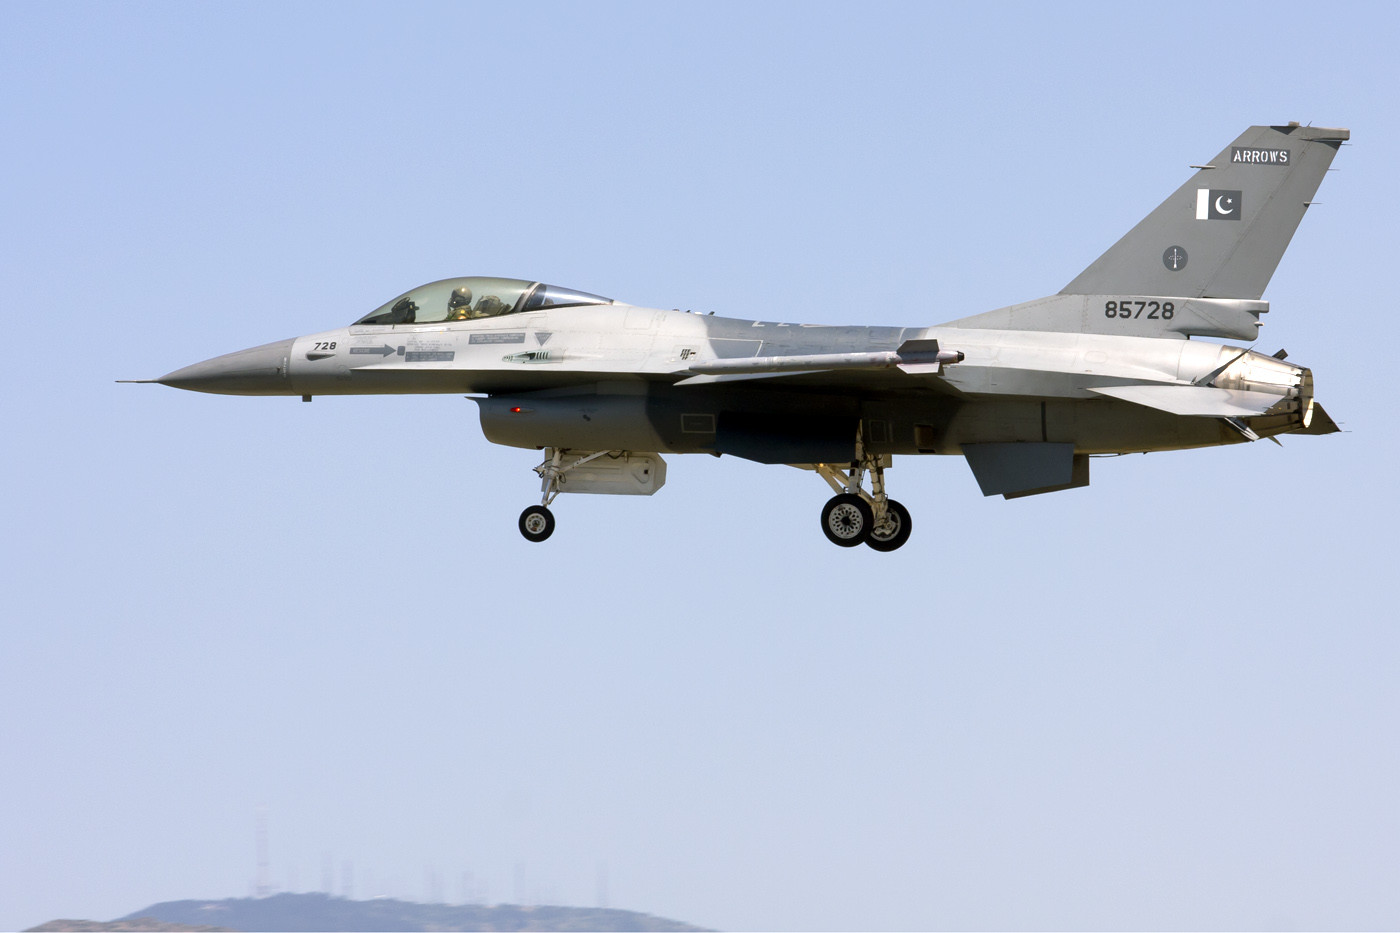 """<p><strong>F-16A Pakistan. Фото: © Flickr/</strong><a href=""""https://www.flickr.com/photos/109661044@N07/32109632330/in/photolist-co8Rd-9GWJXY-QVqg1w-9qLZe2"""" target=""""_self""""><strong>Rob Schleiffert</strong></a></p>"""